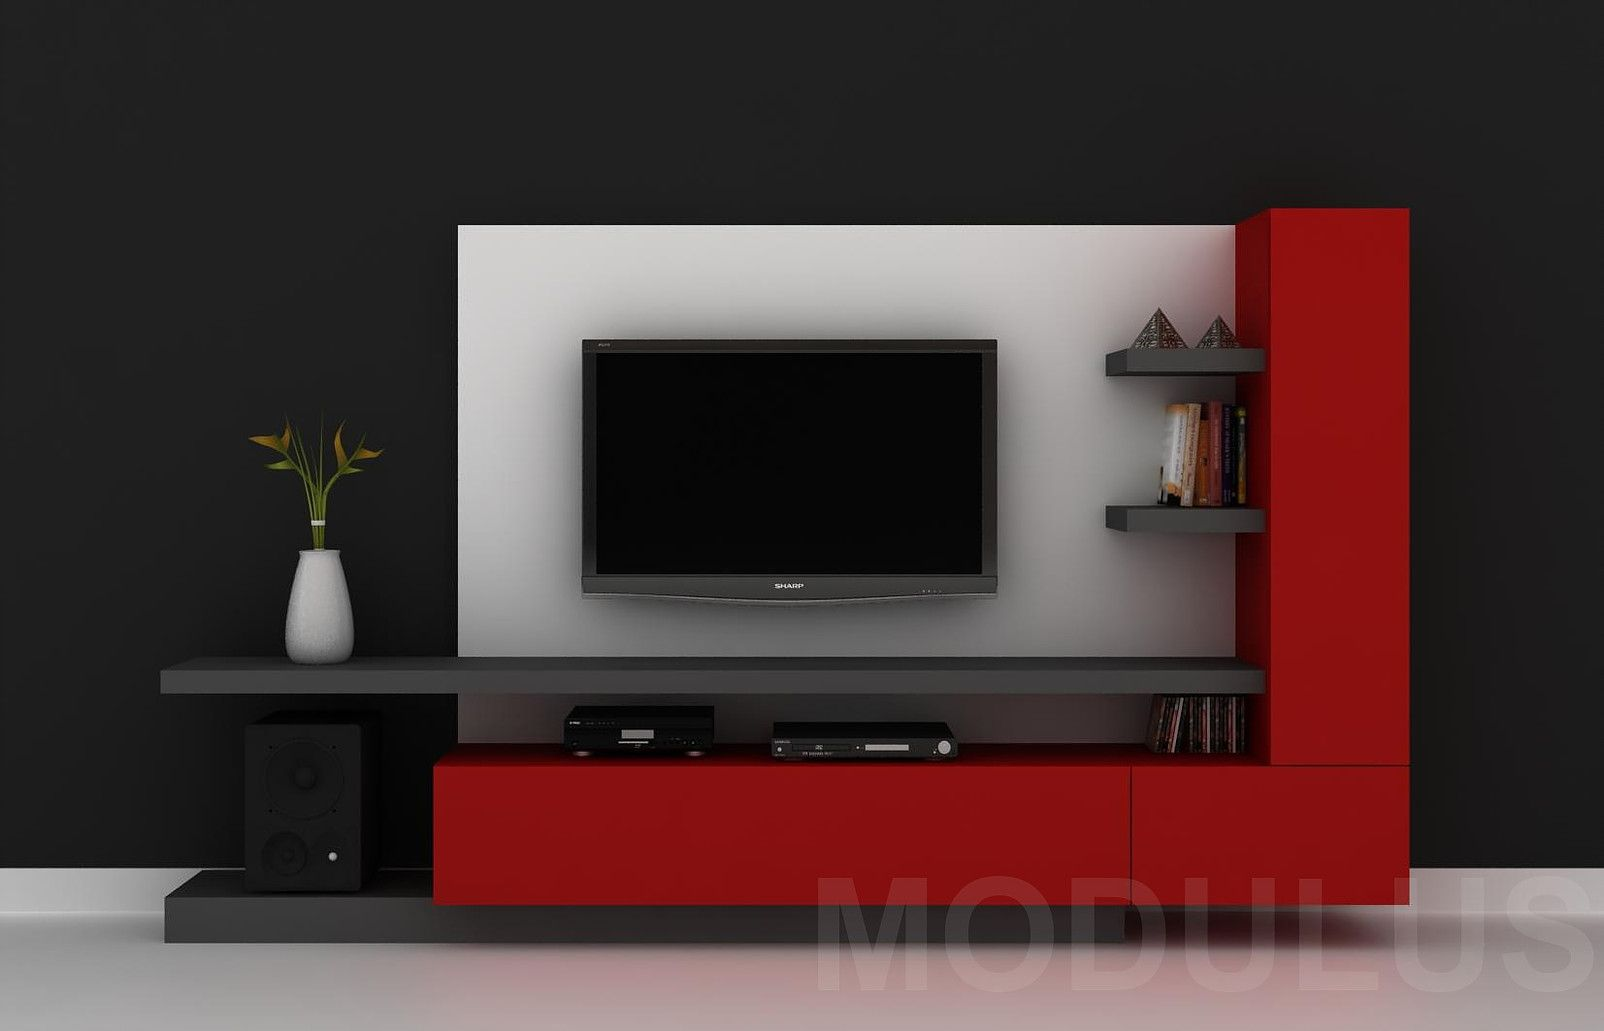 Modulares para living tv lcd led wall unit muebles for Adornos para muebles modernos